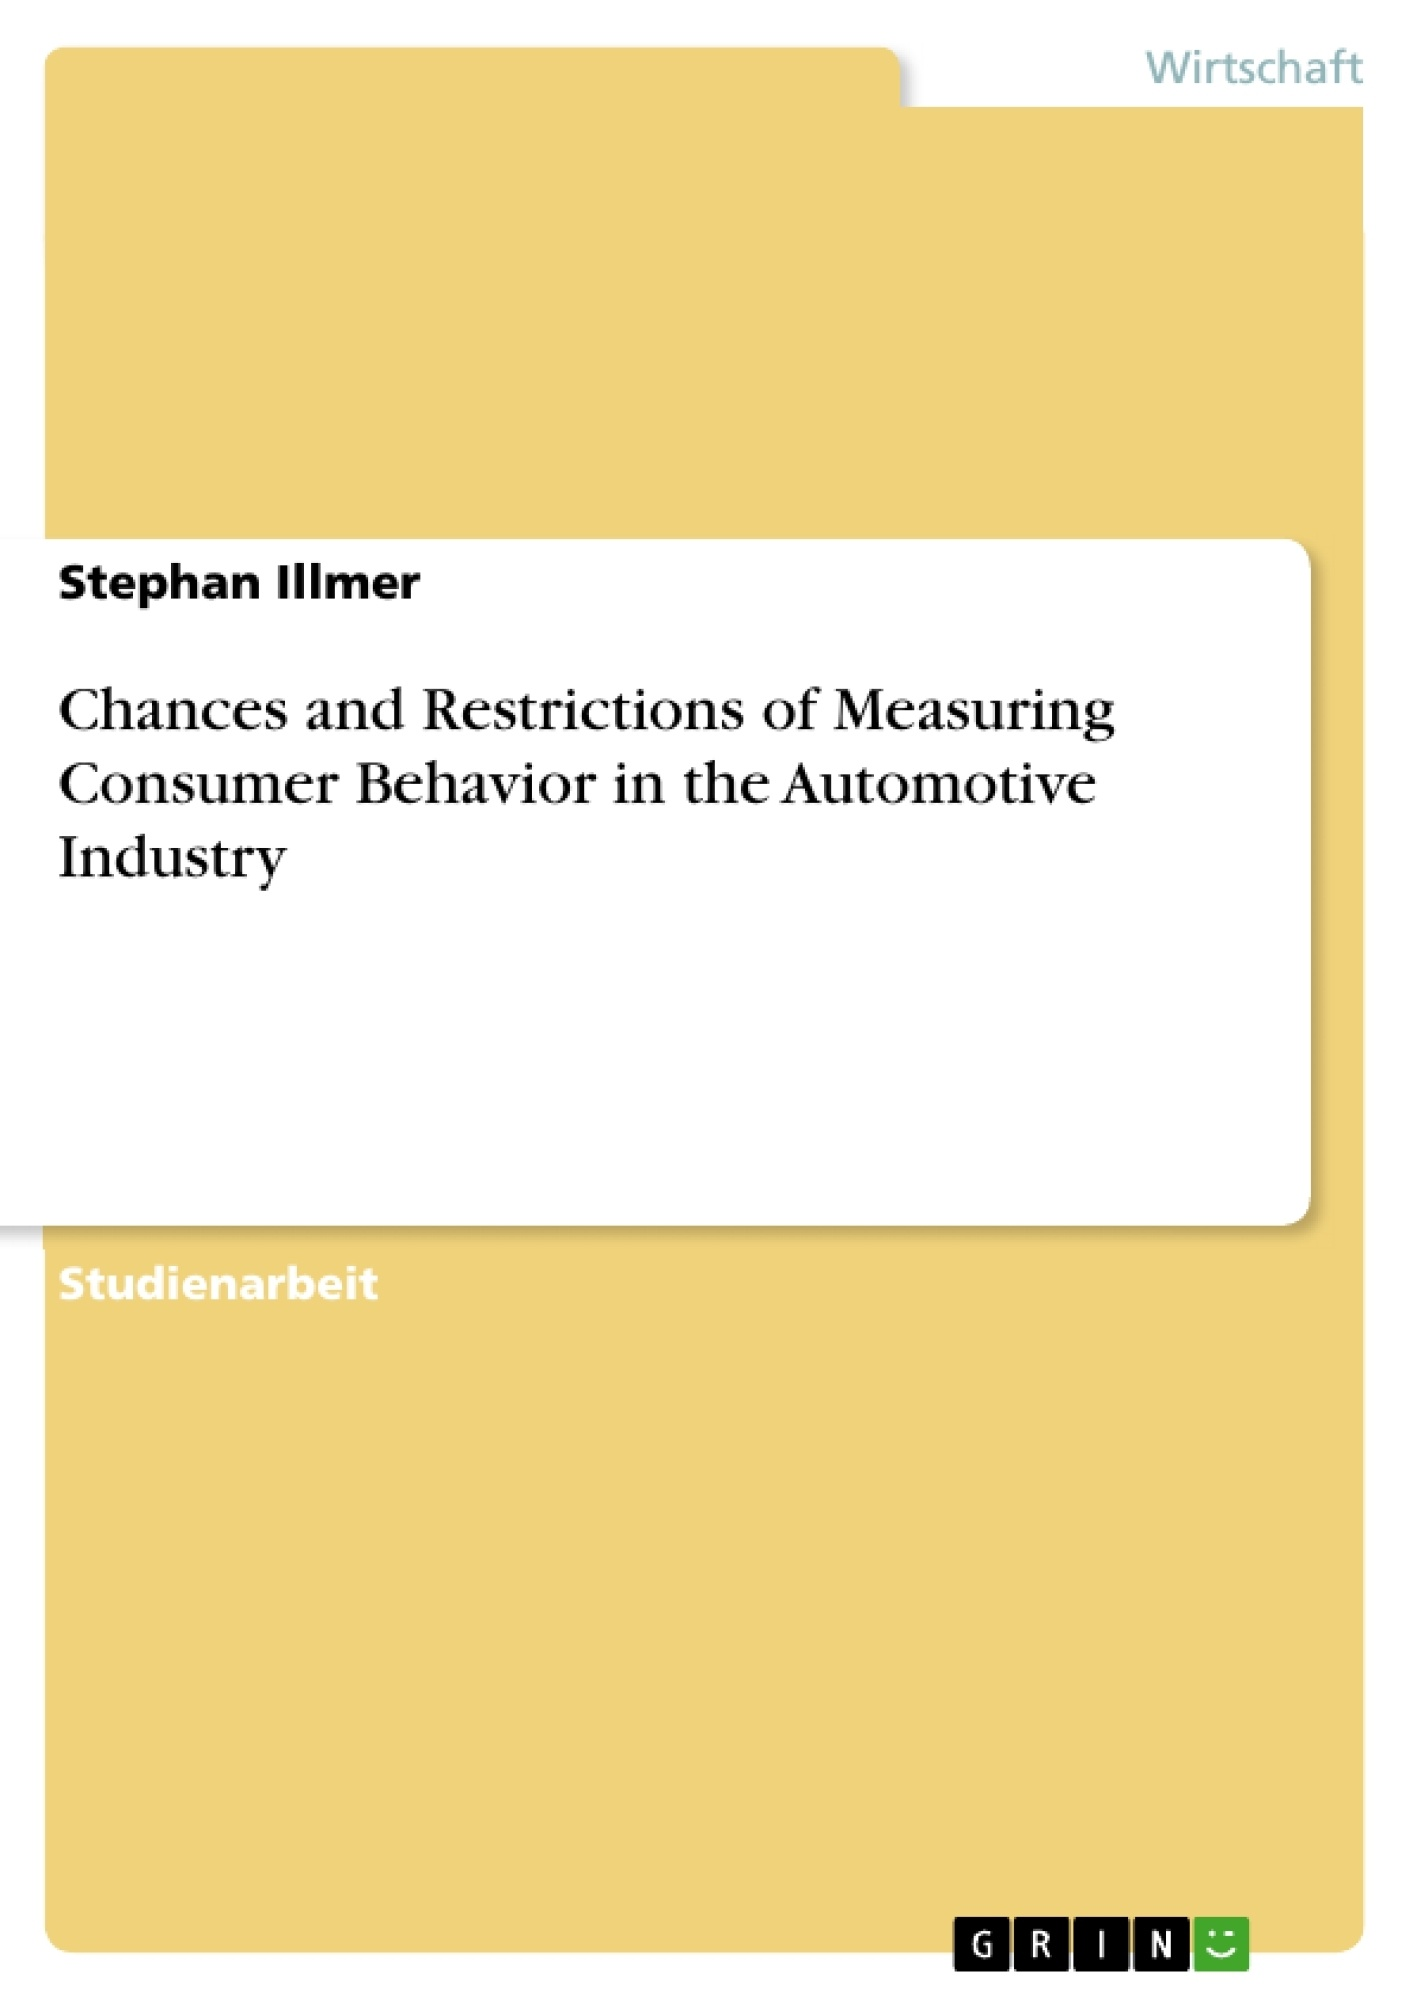 Titel: Chances and Restrictions of Measuring Consumer Behavior in the Automotive Industry